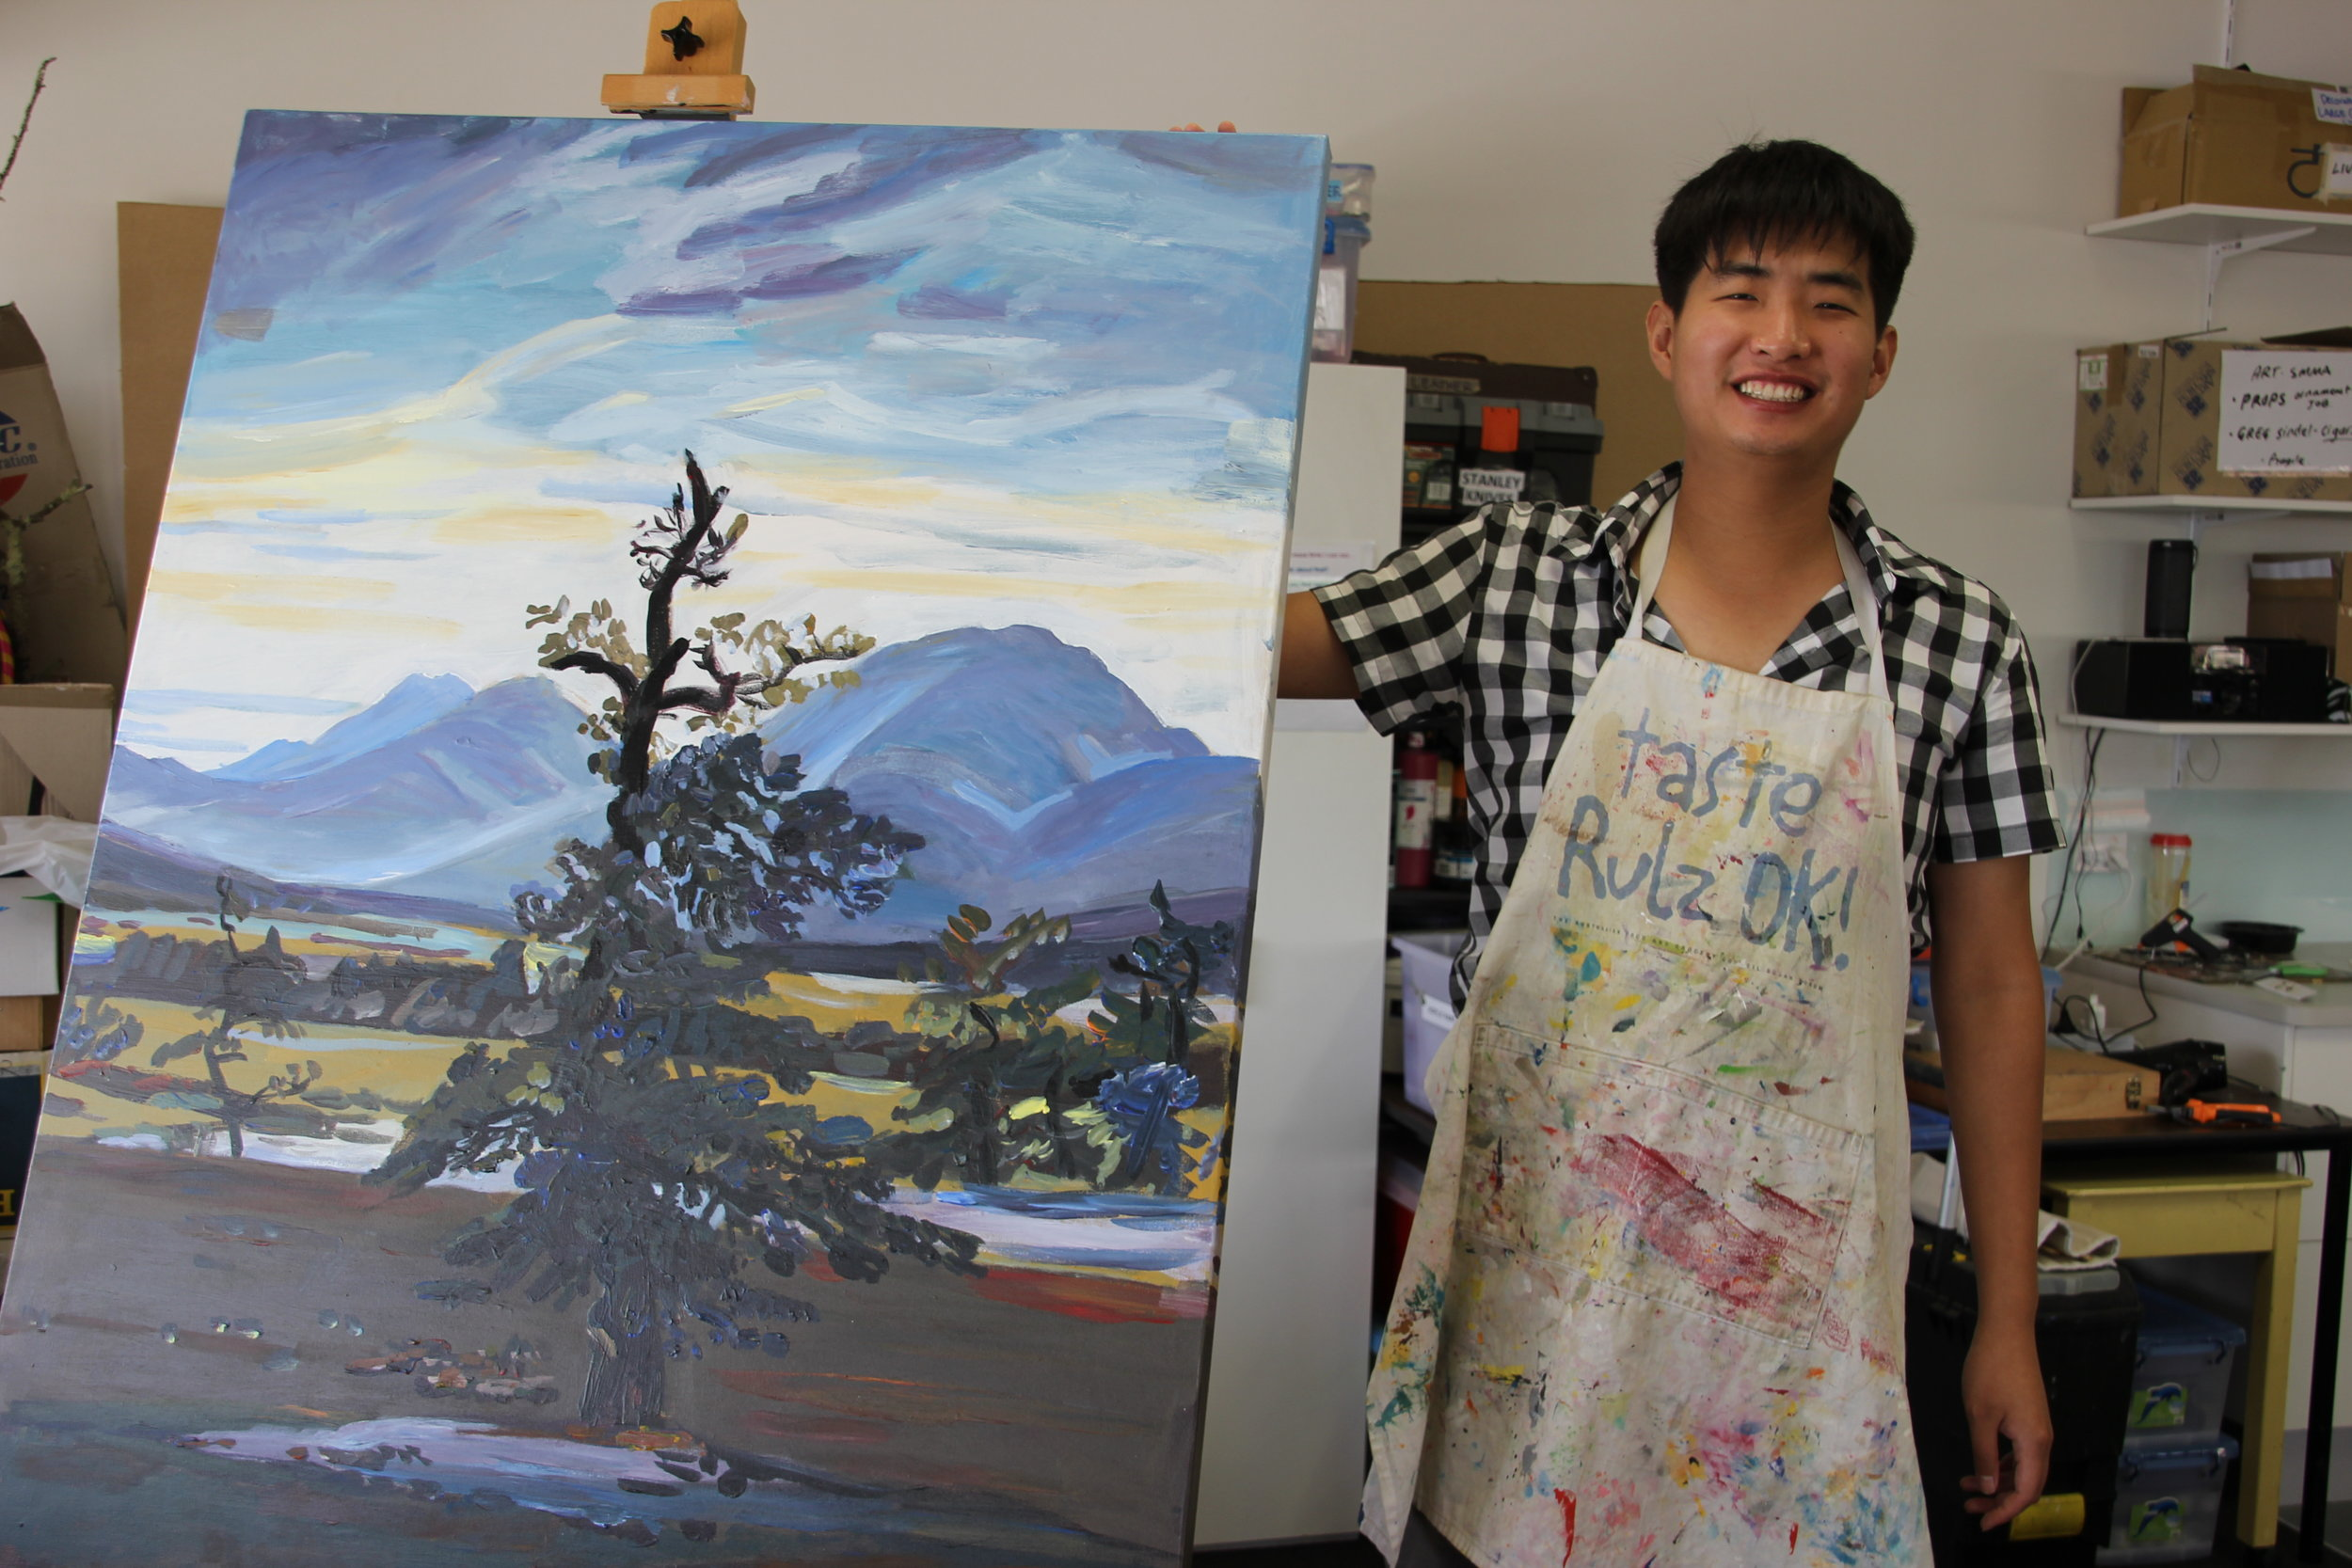 """I'm making a painting of trees. I found the picture at the art room. I'm painting a nice piece for the exhibition"" - Daniel"